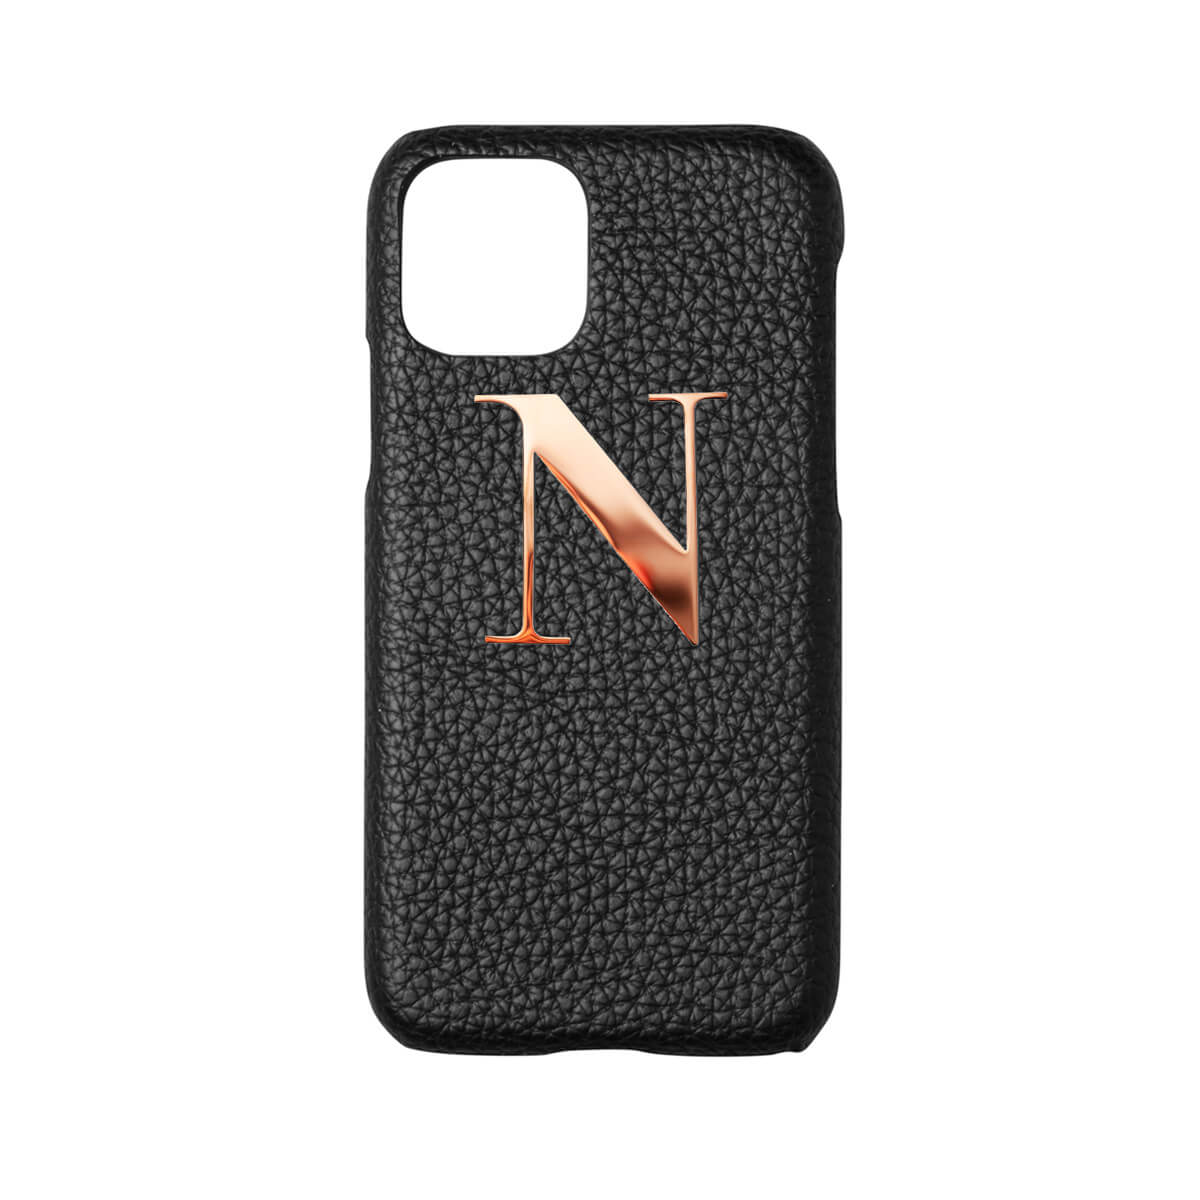 Jet Black Phone Case (iPhone 11 Pro)